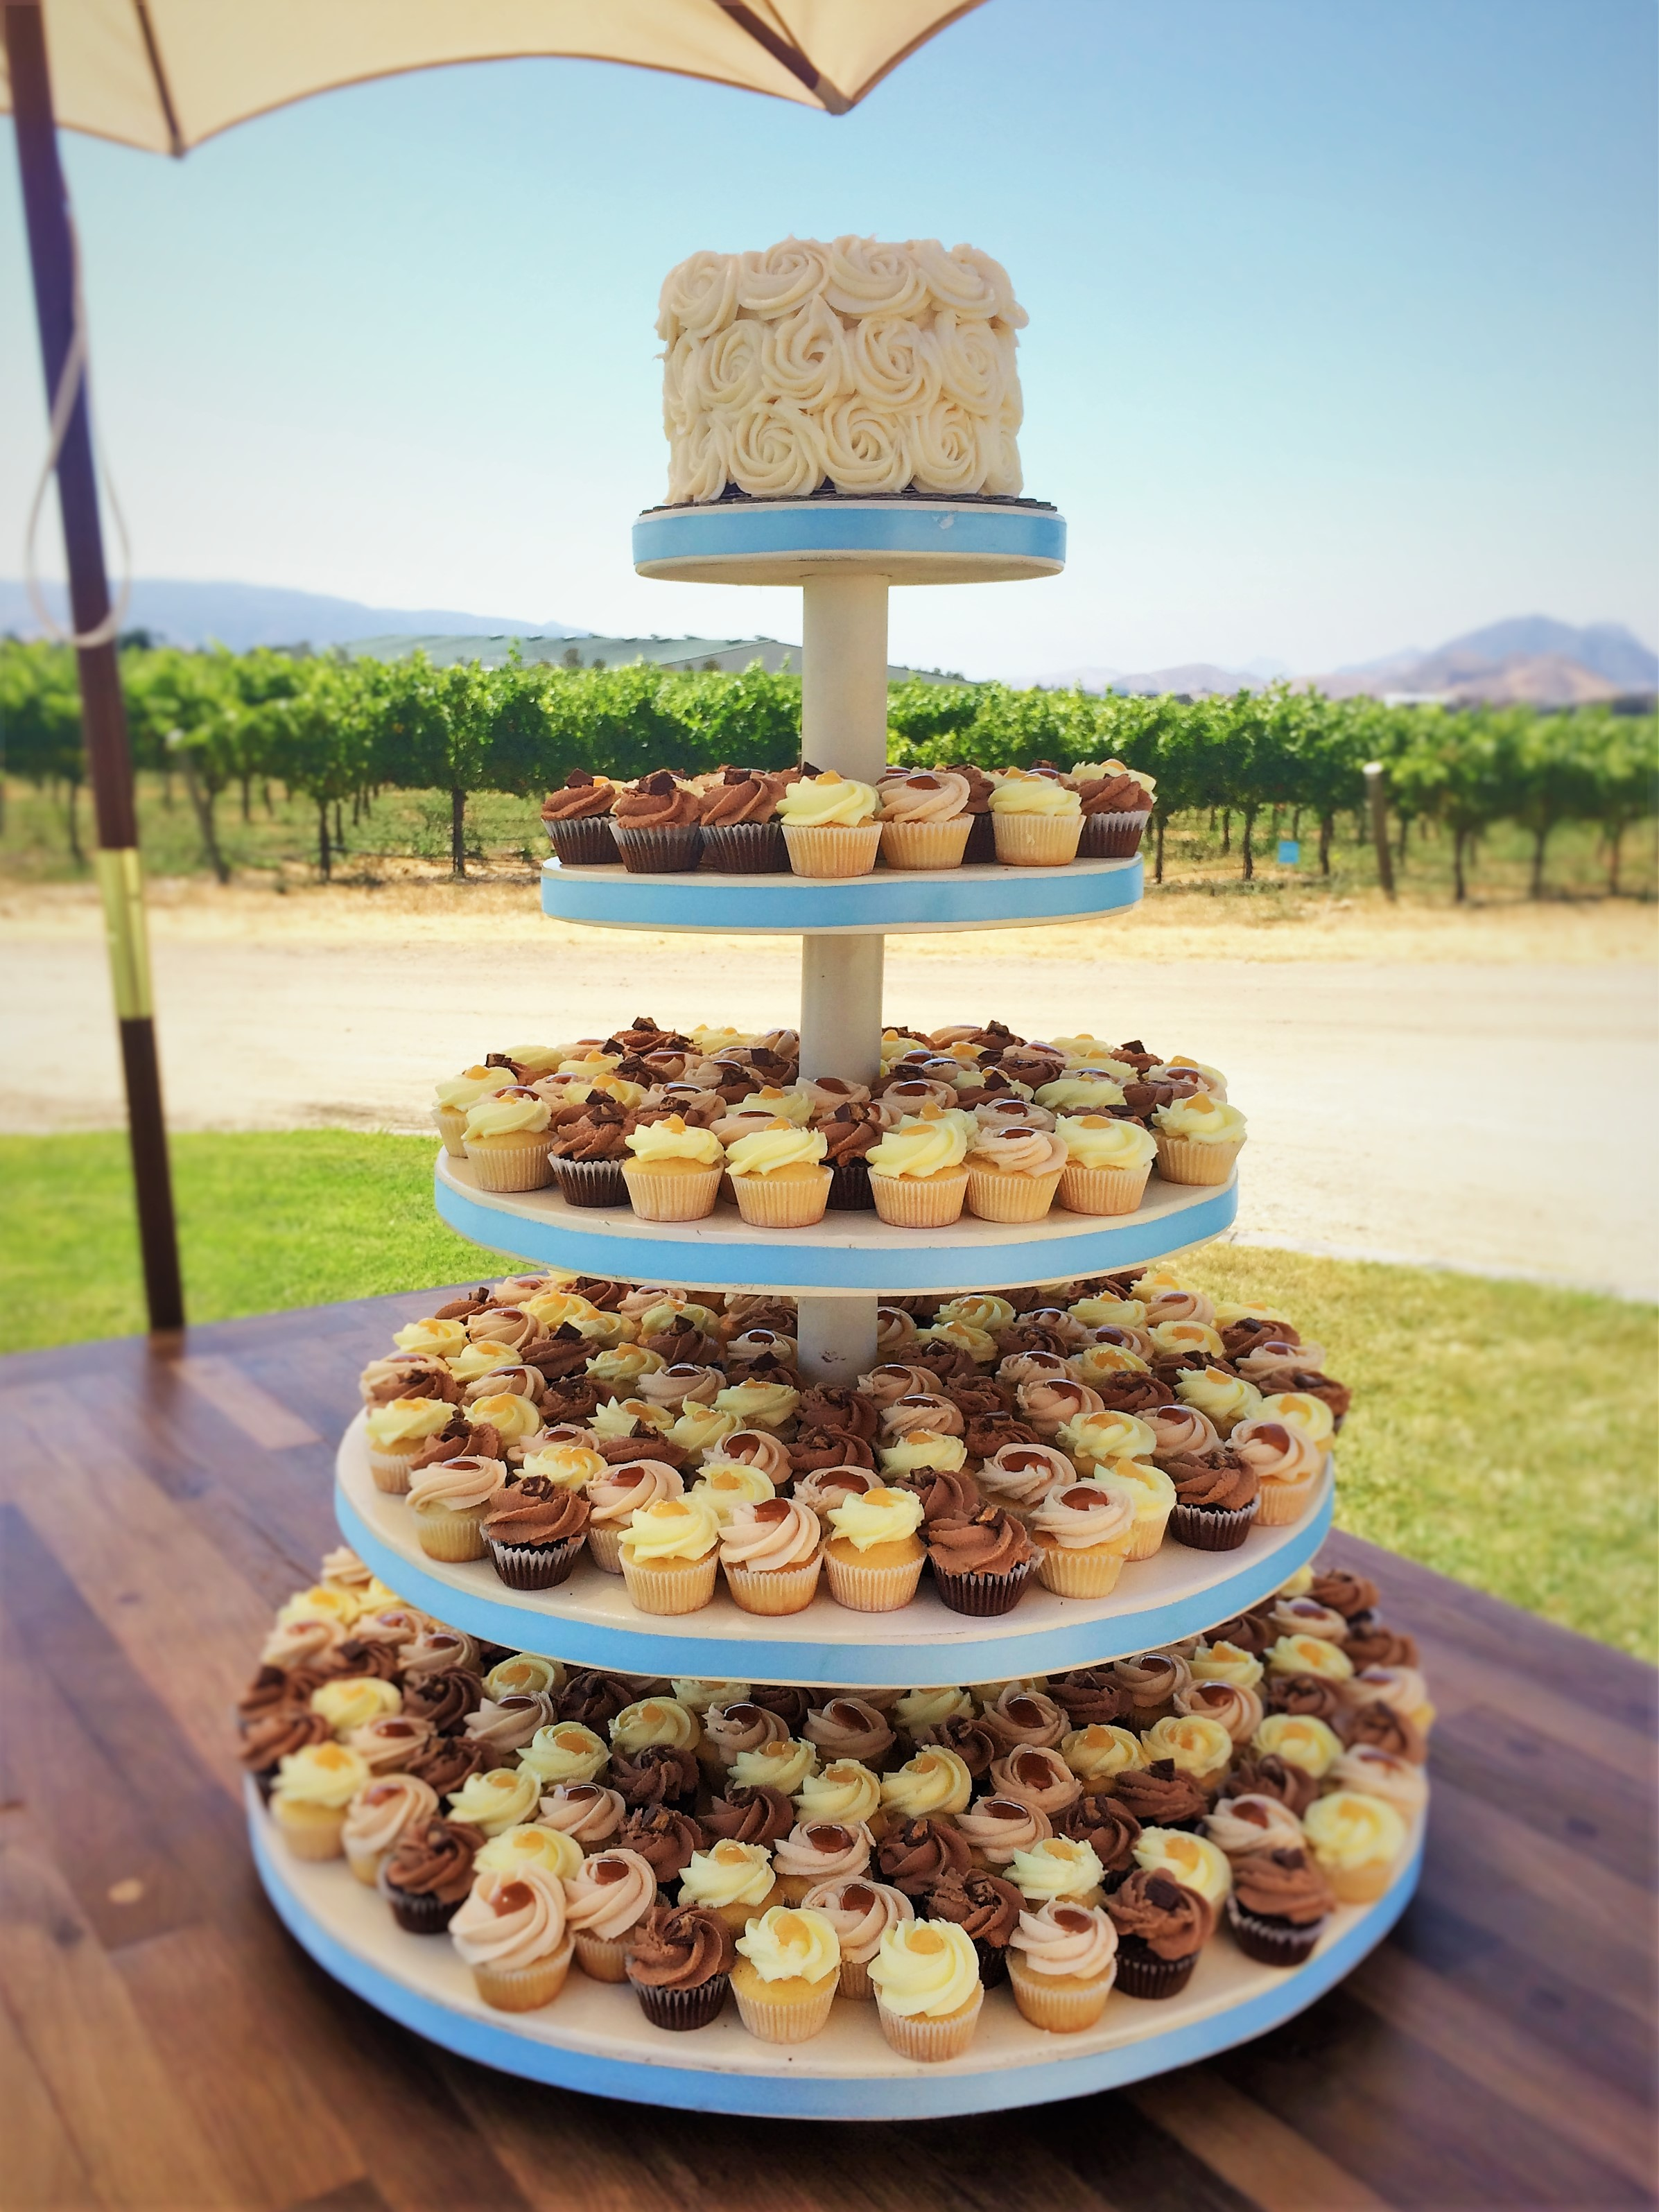 "360 mini cupcakes, 6"" buttercream rosette cutting cake"